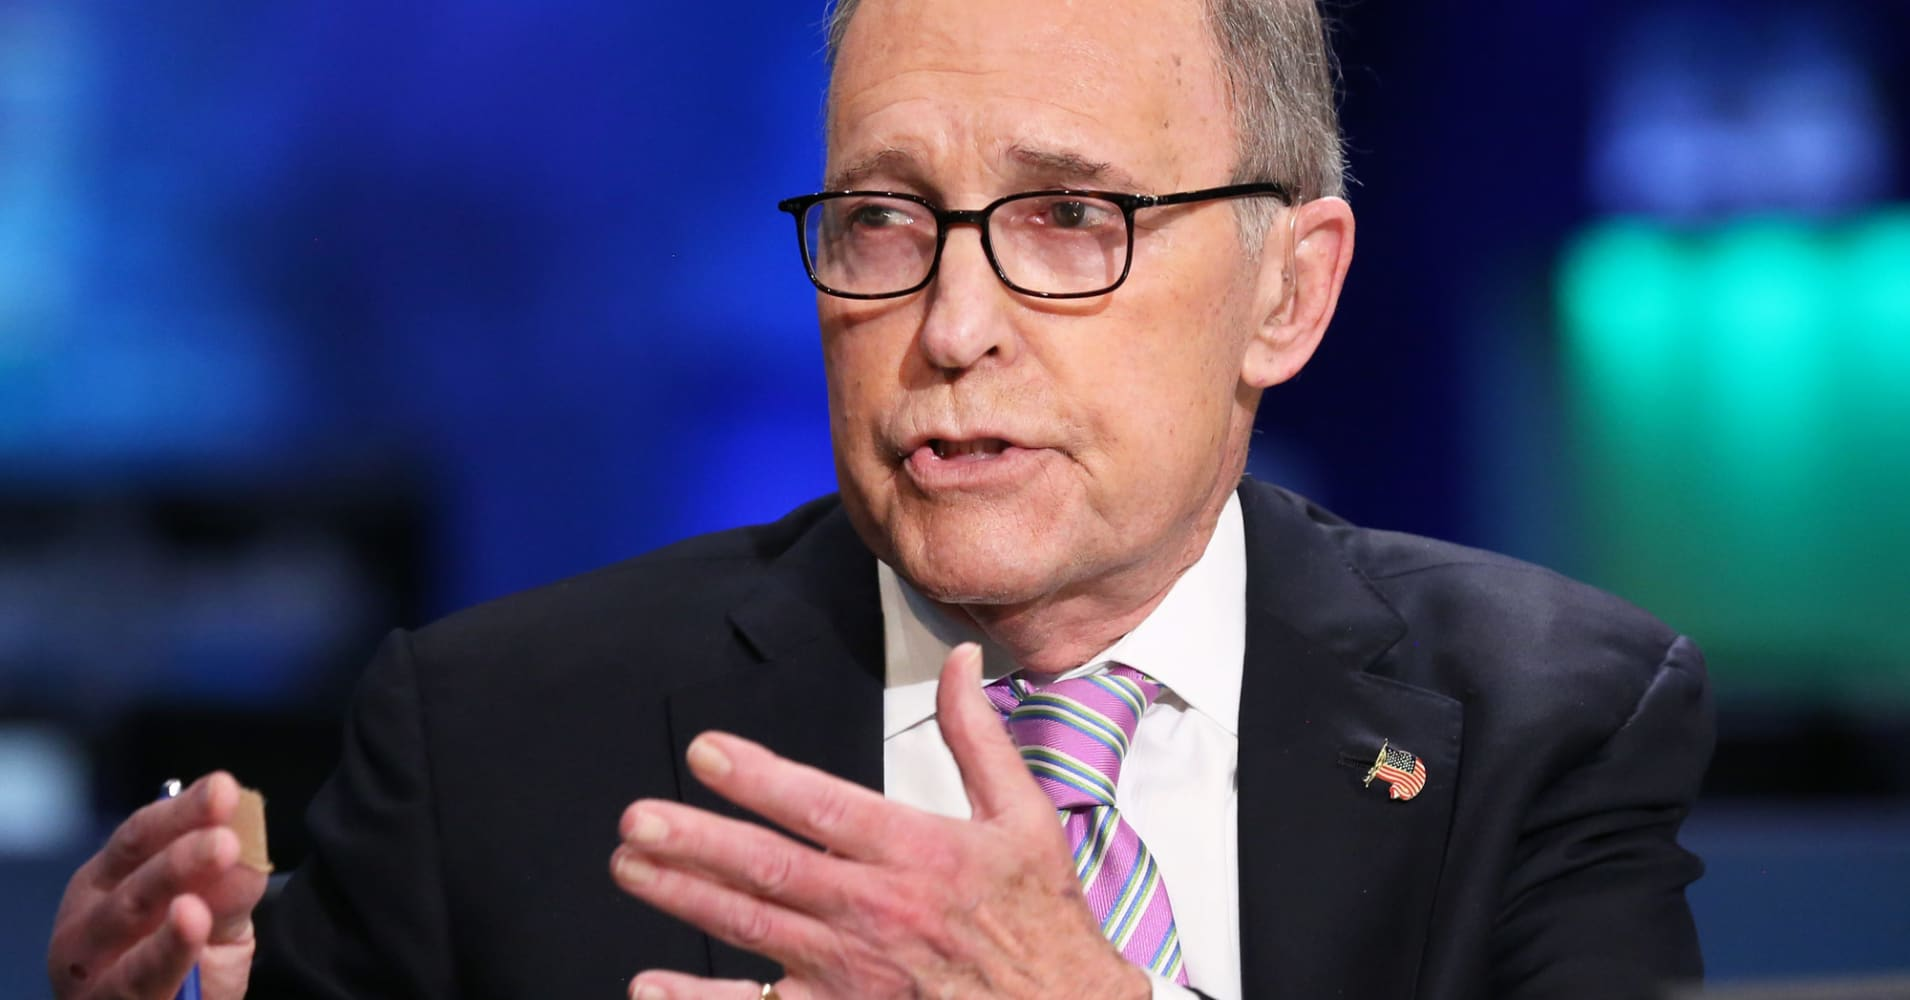 White House economic advisor Kudlow says trade deal with Mexico is 'getting close'